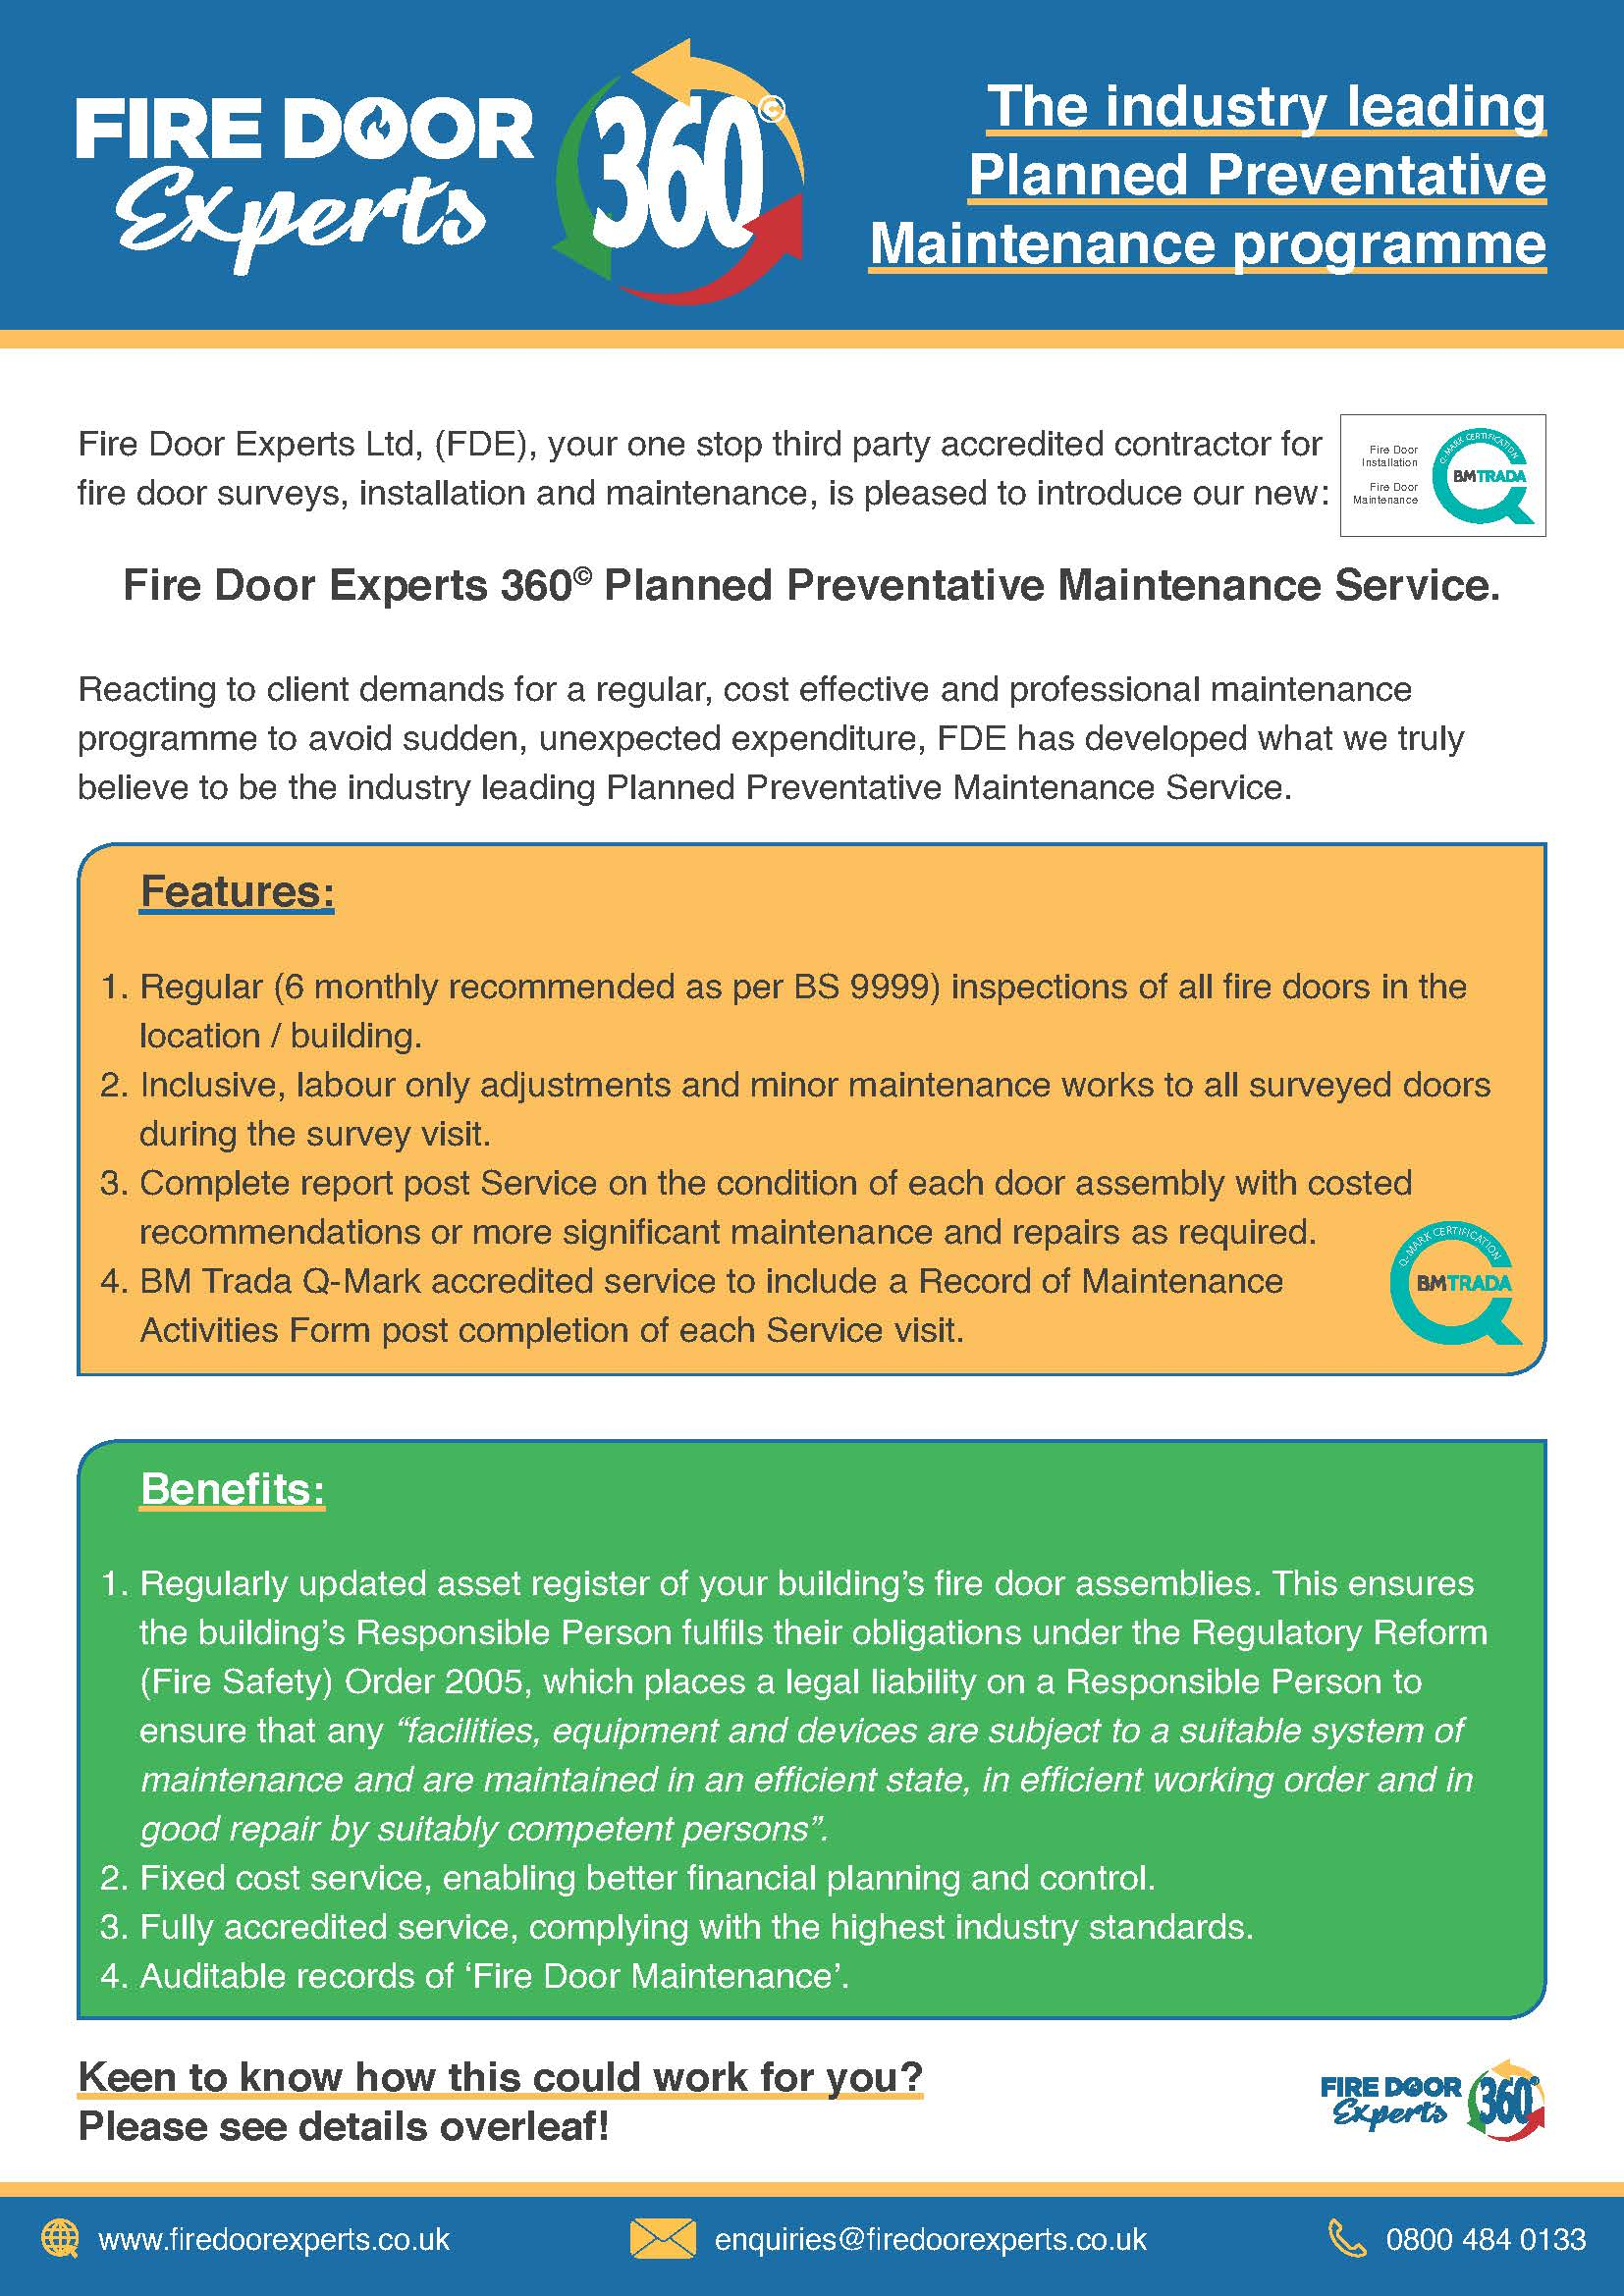 Fire Door Experts 360 - An Introduction inc ARTs